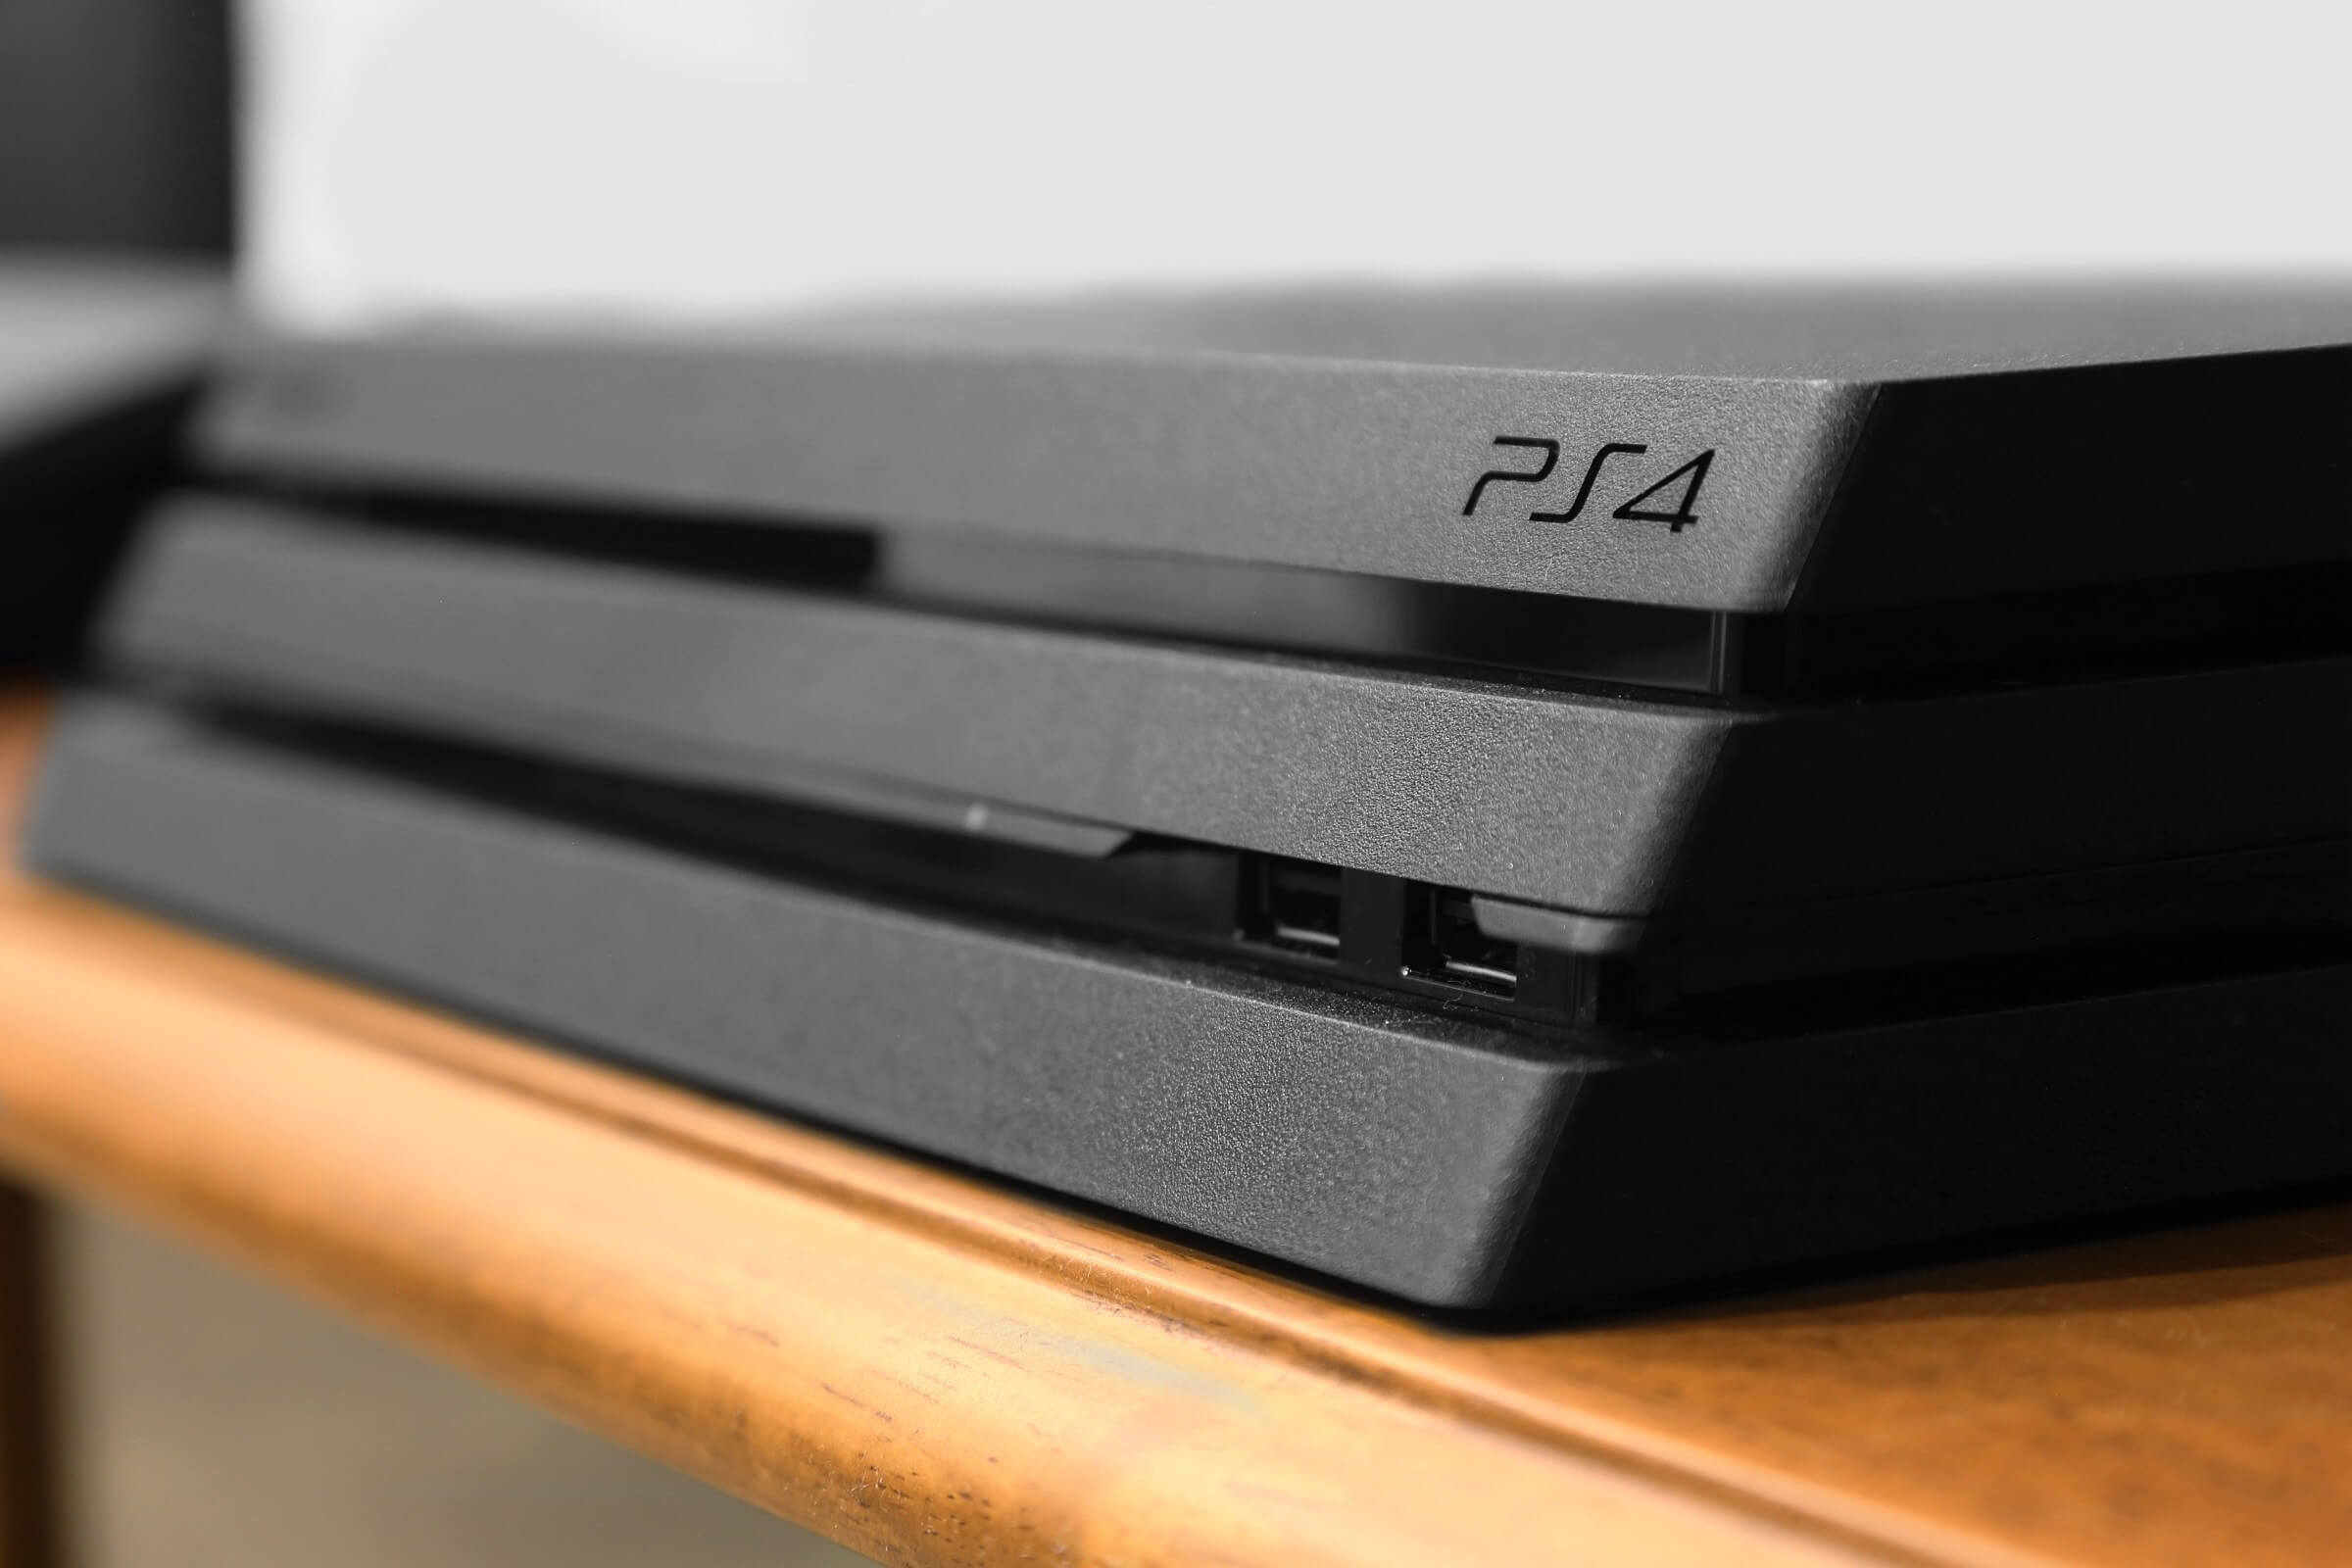 Latest PlayStation 4 Pro fixes loud hardware issue